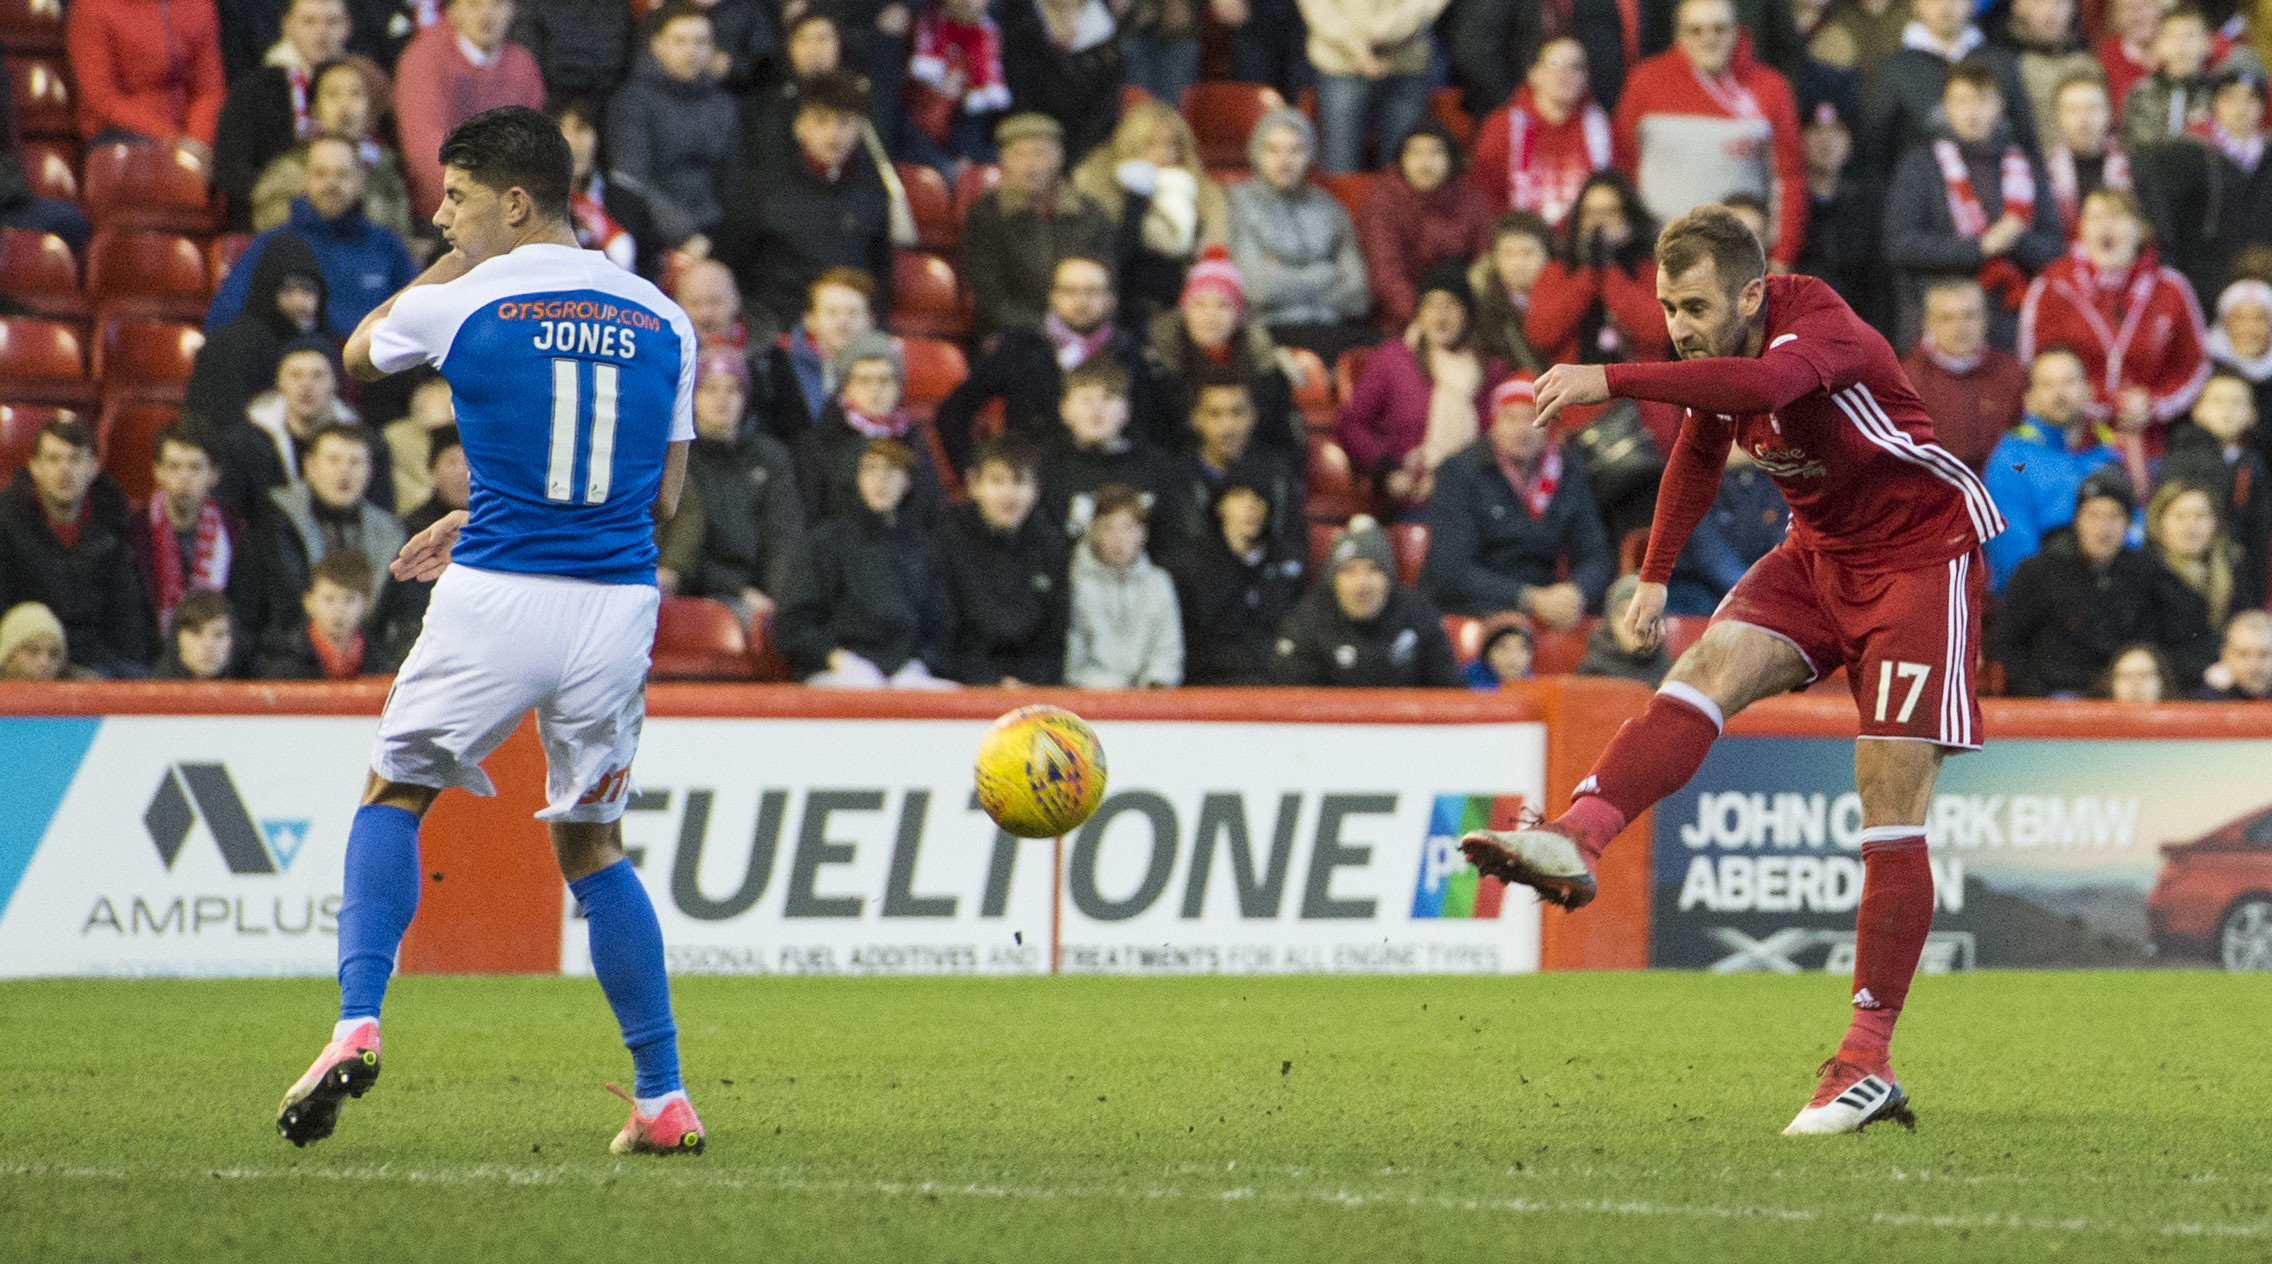 Aberdeen's Niall McGinn makes it 3-1 against Kilmarnock.